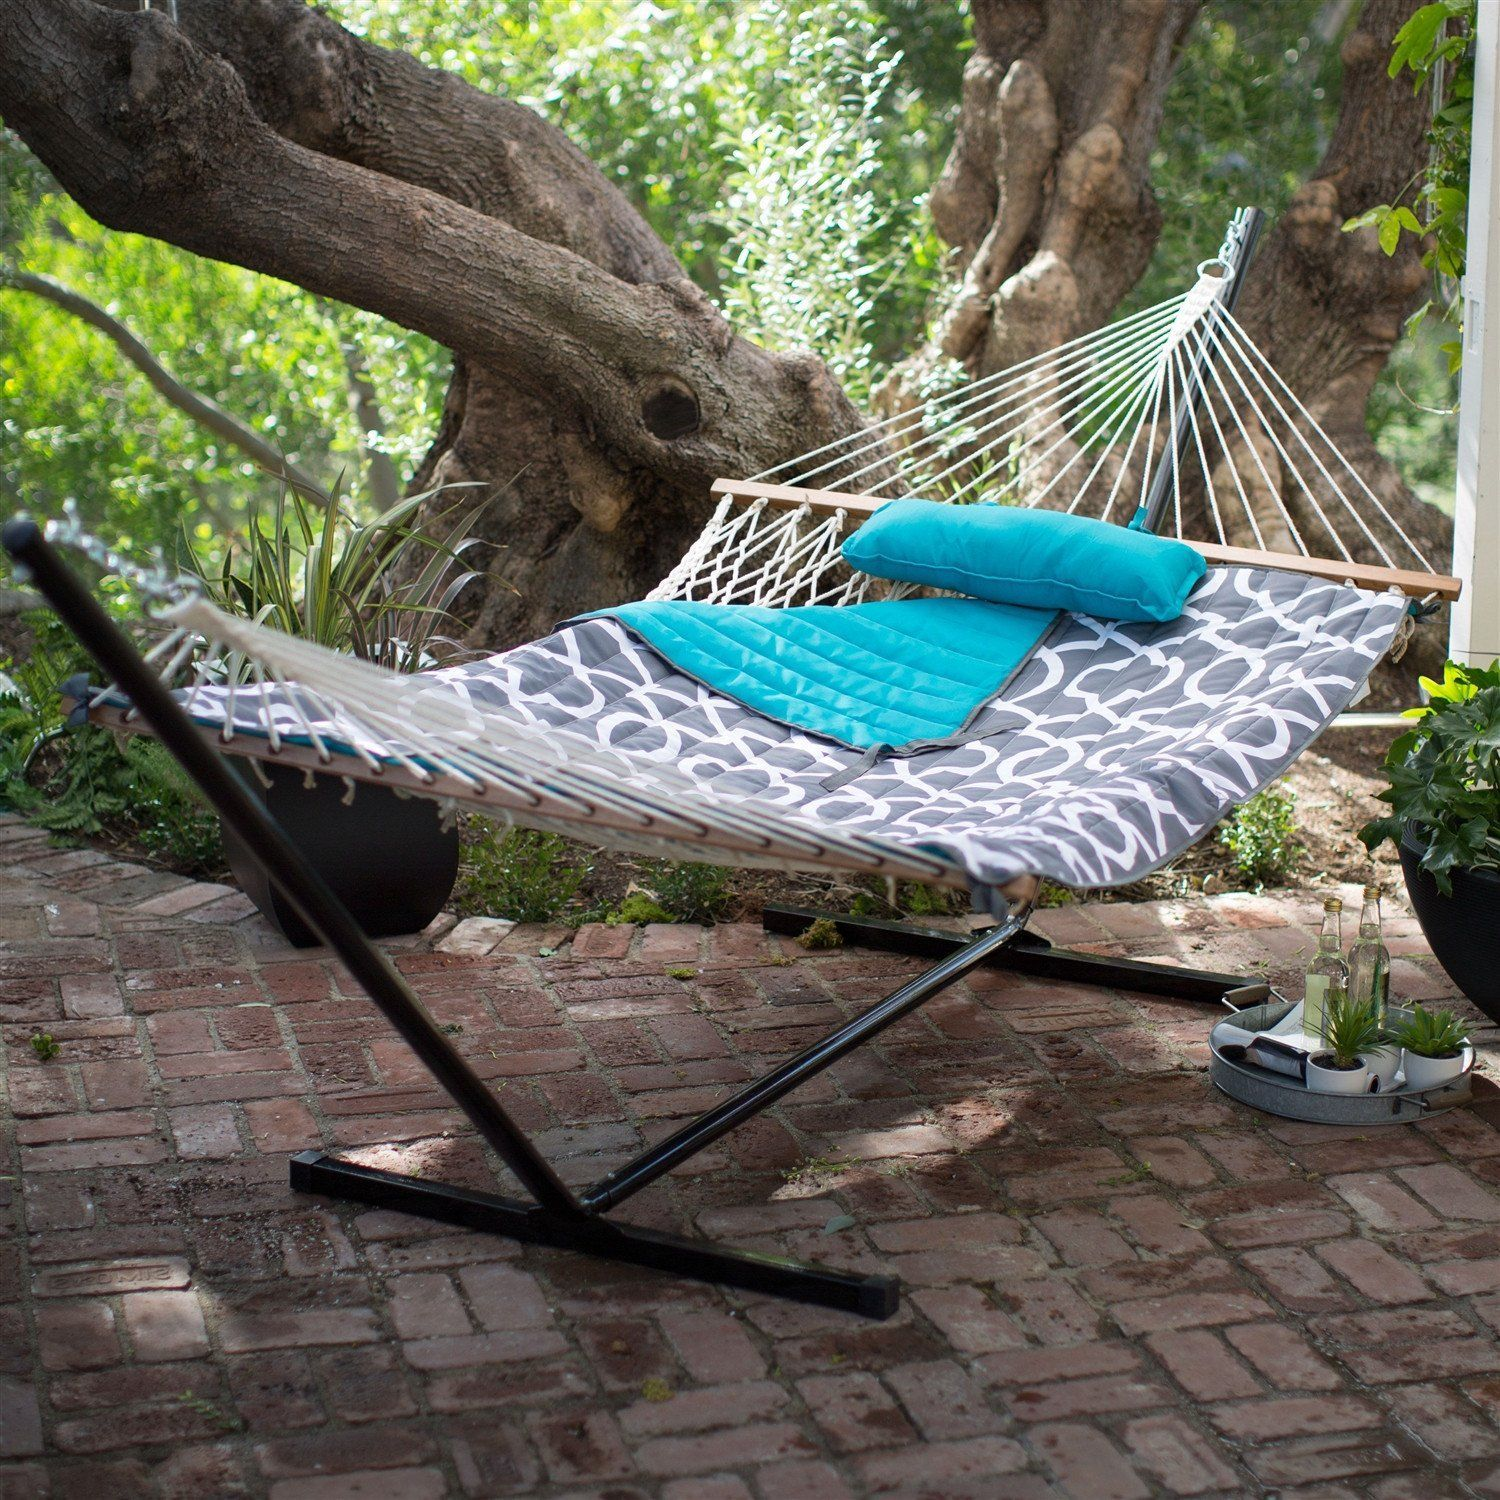 cotton rope 11 ft hammock with metal stand and aqua lattice pillow pad set cotton rope 11 ft hammock with metal stand and aqua lattice pillow      rh   pinterest